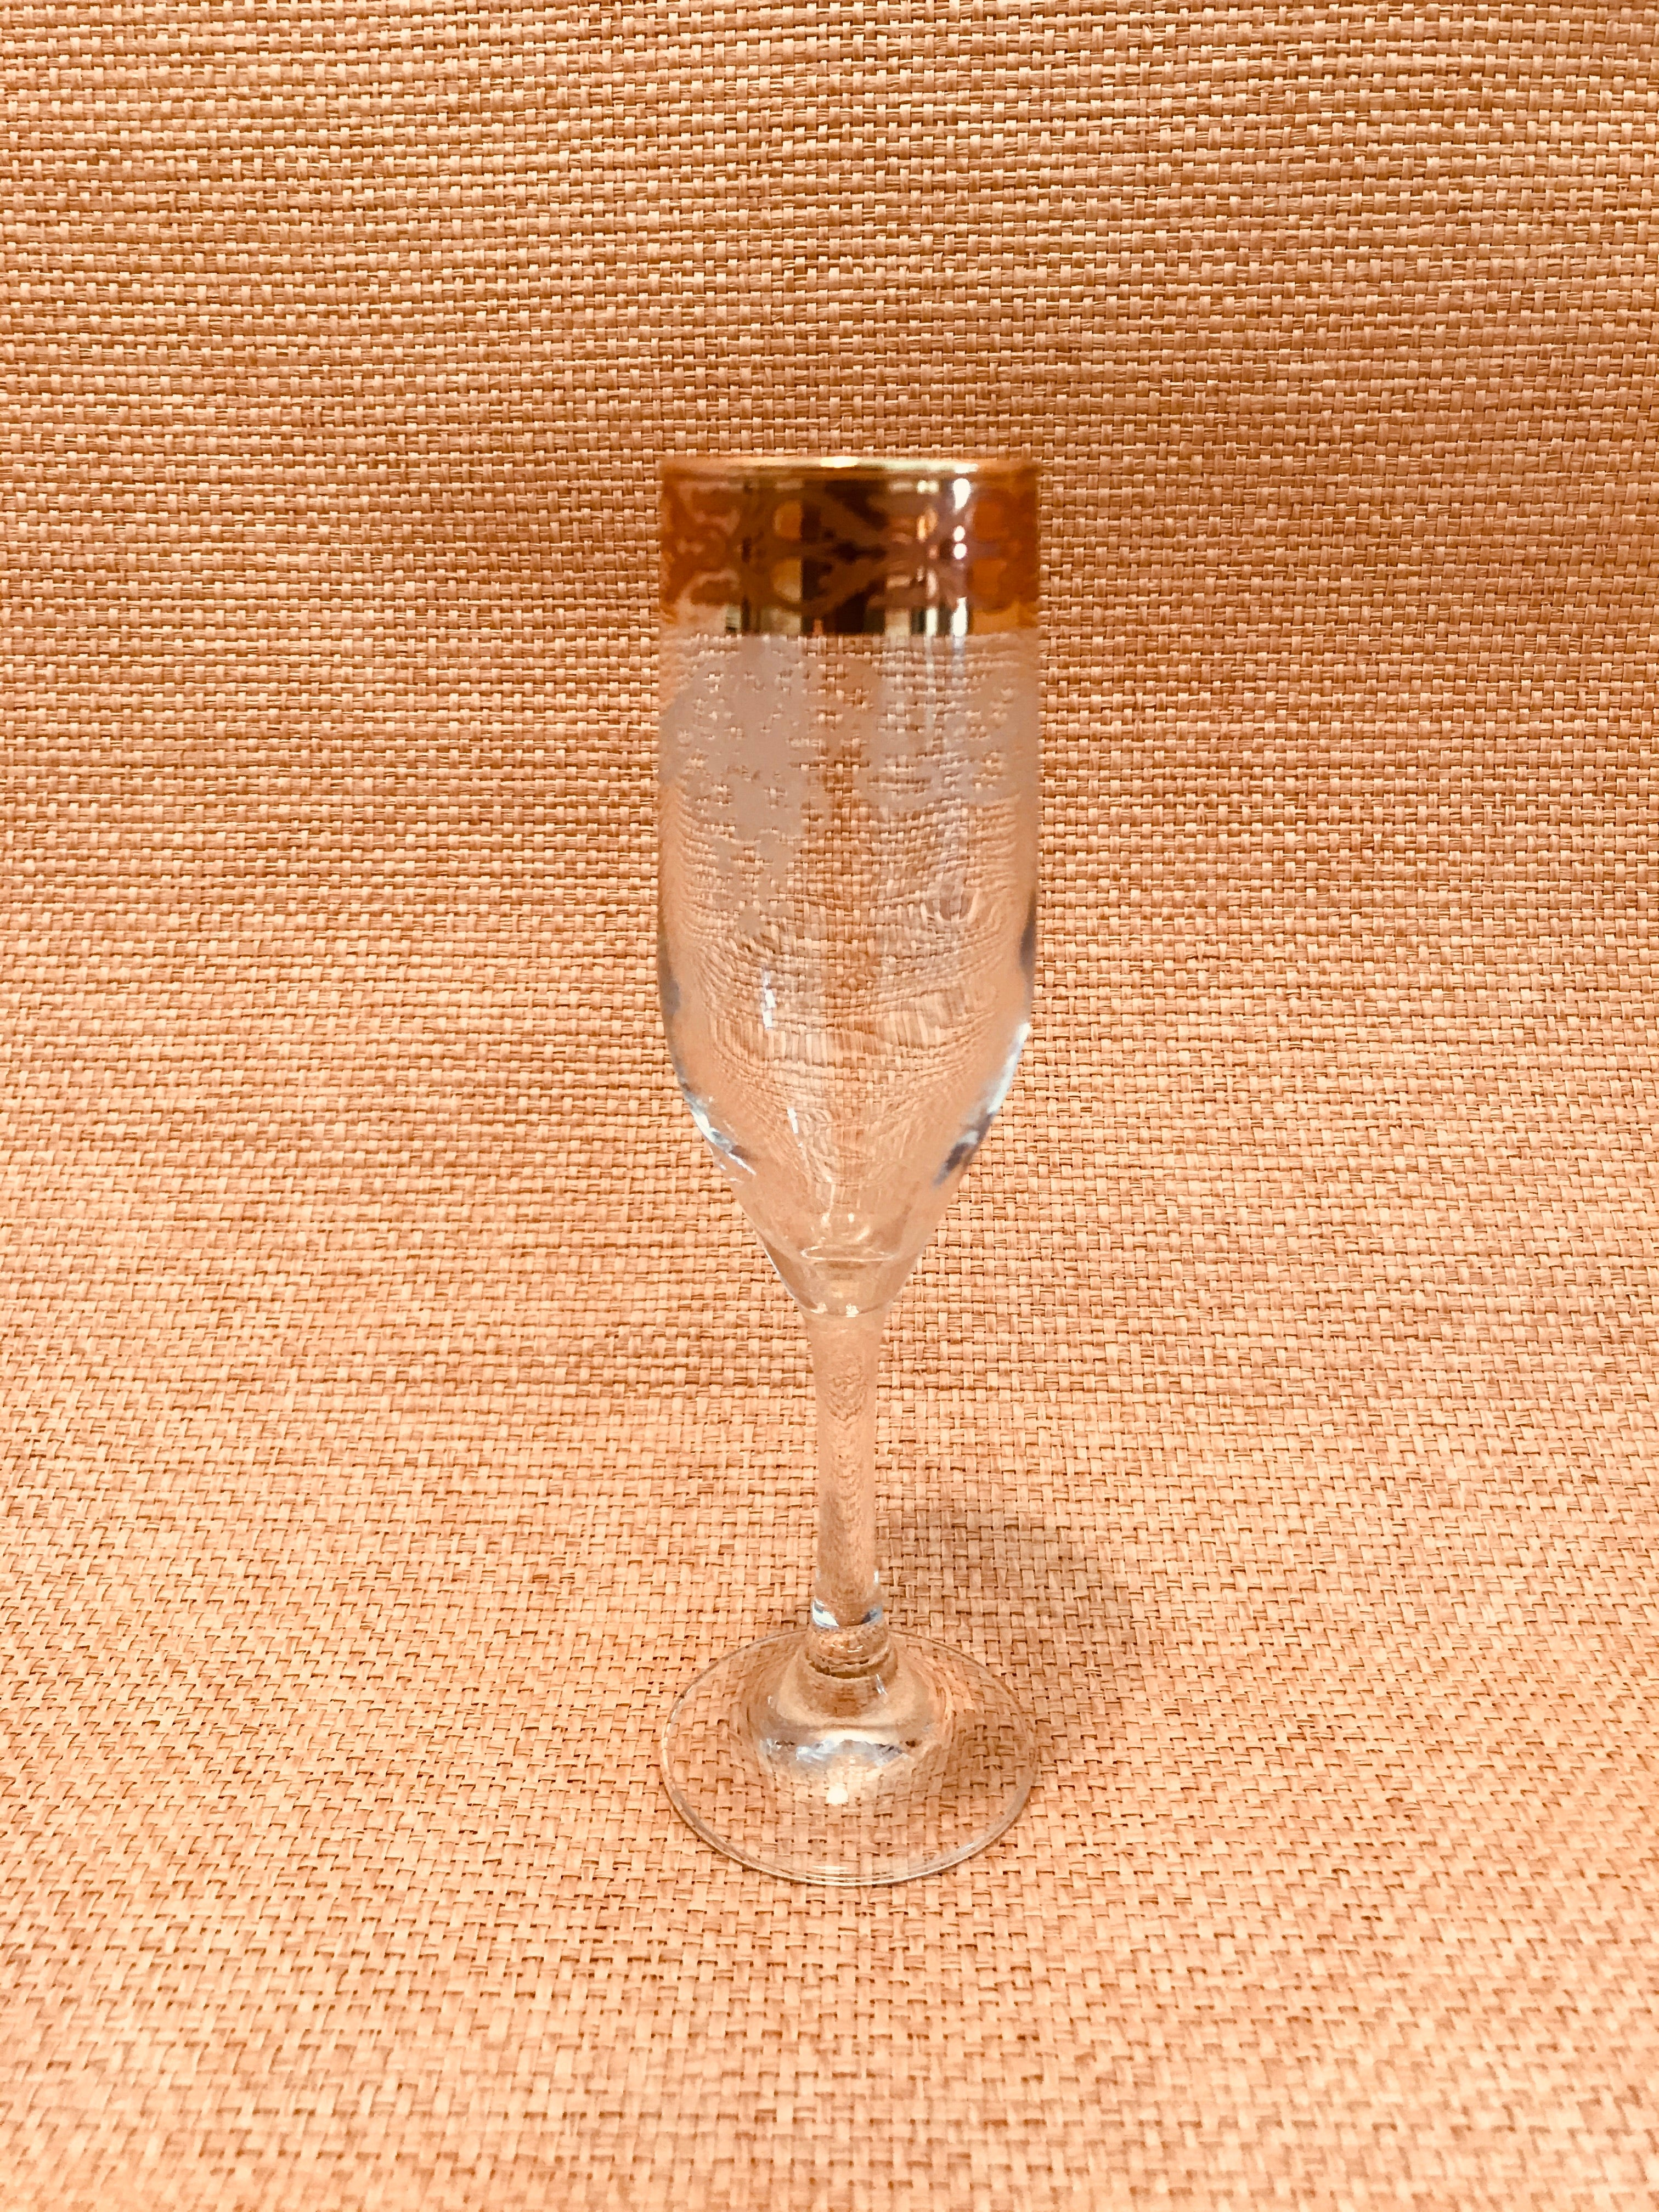 Vintage Ornate Champagne Flutes - Set 4